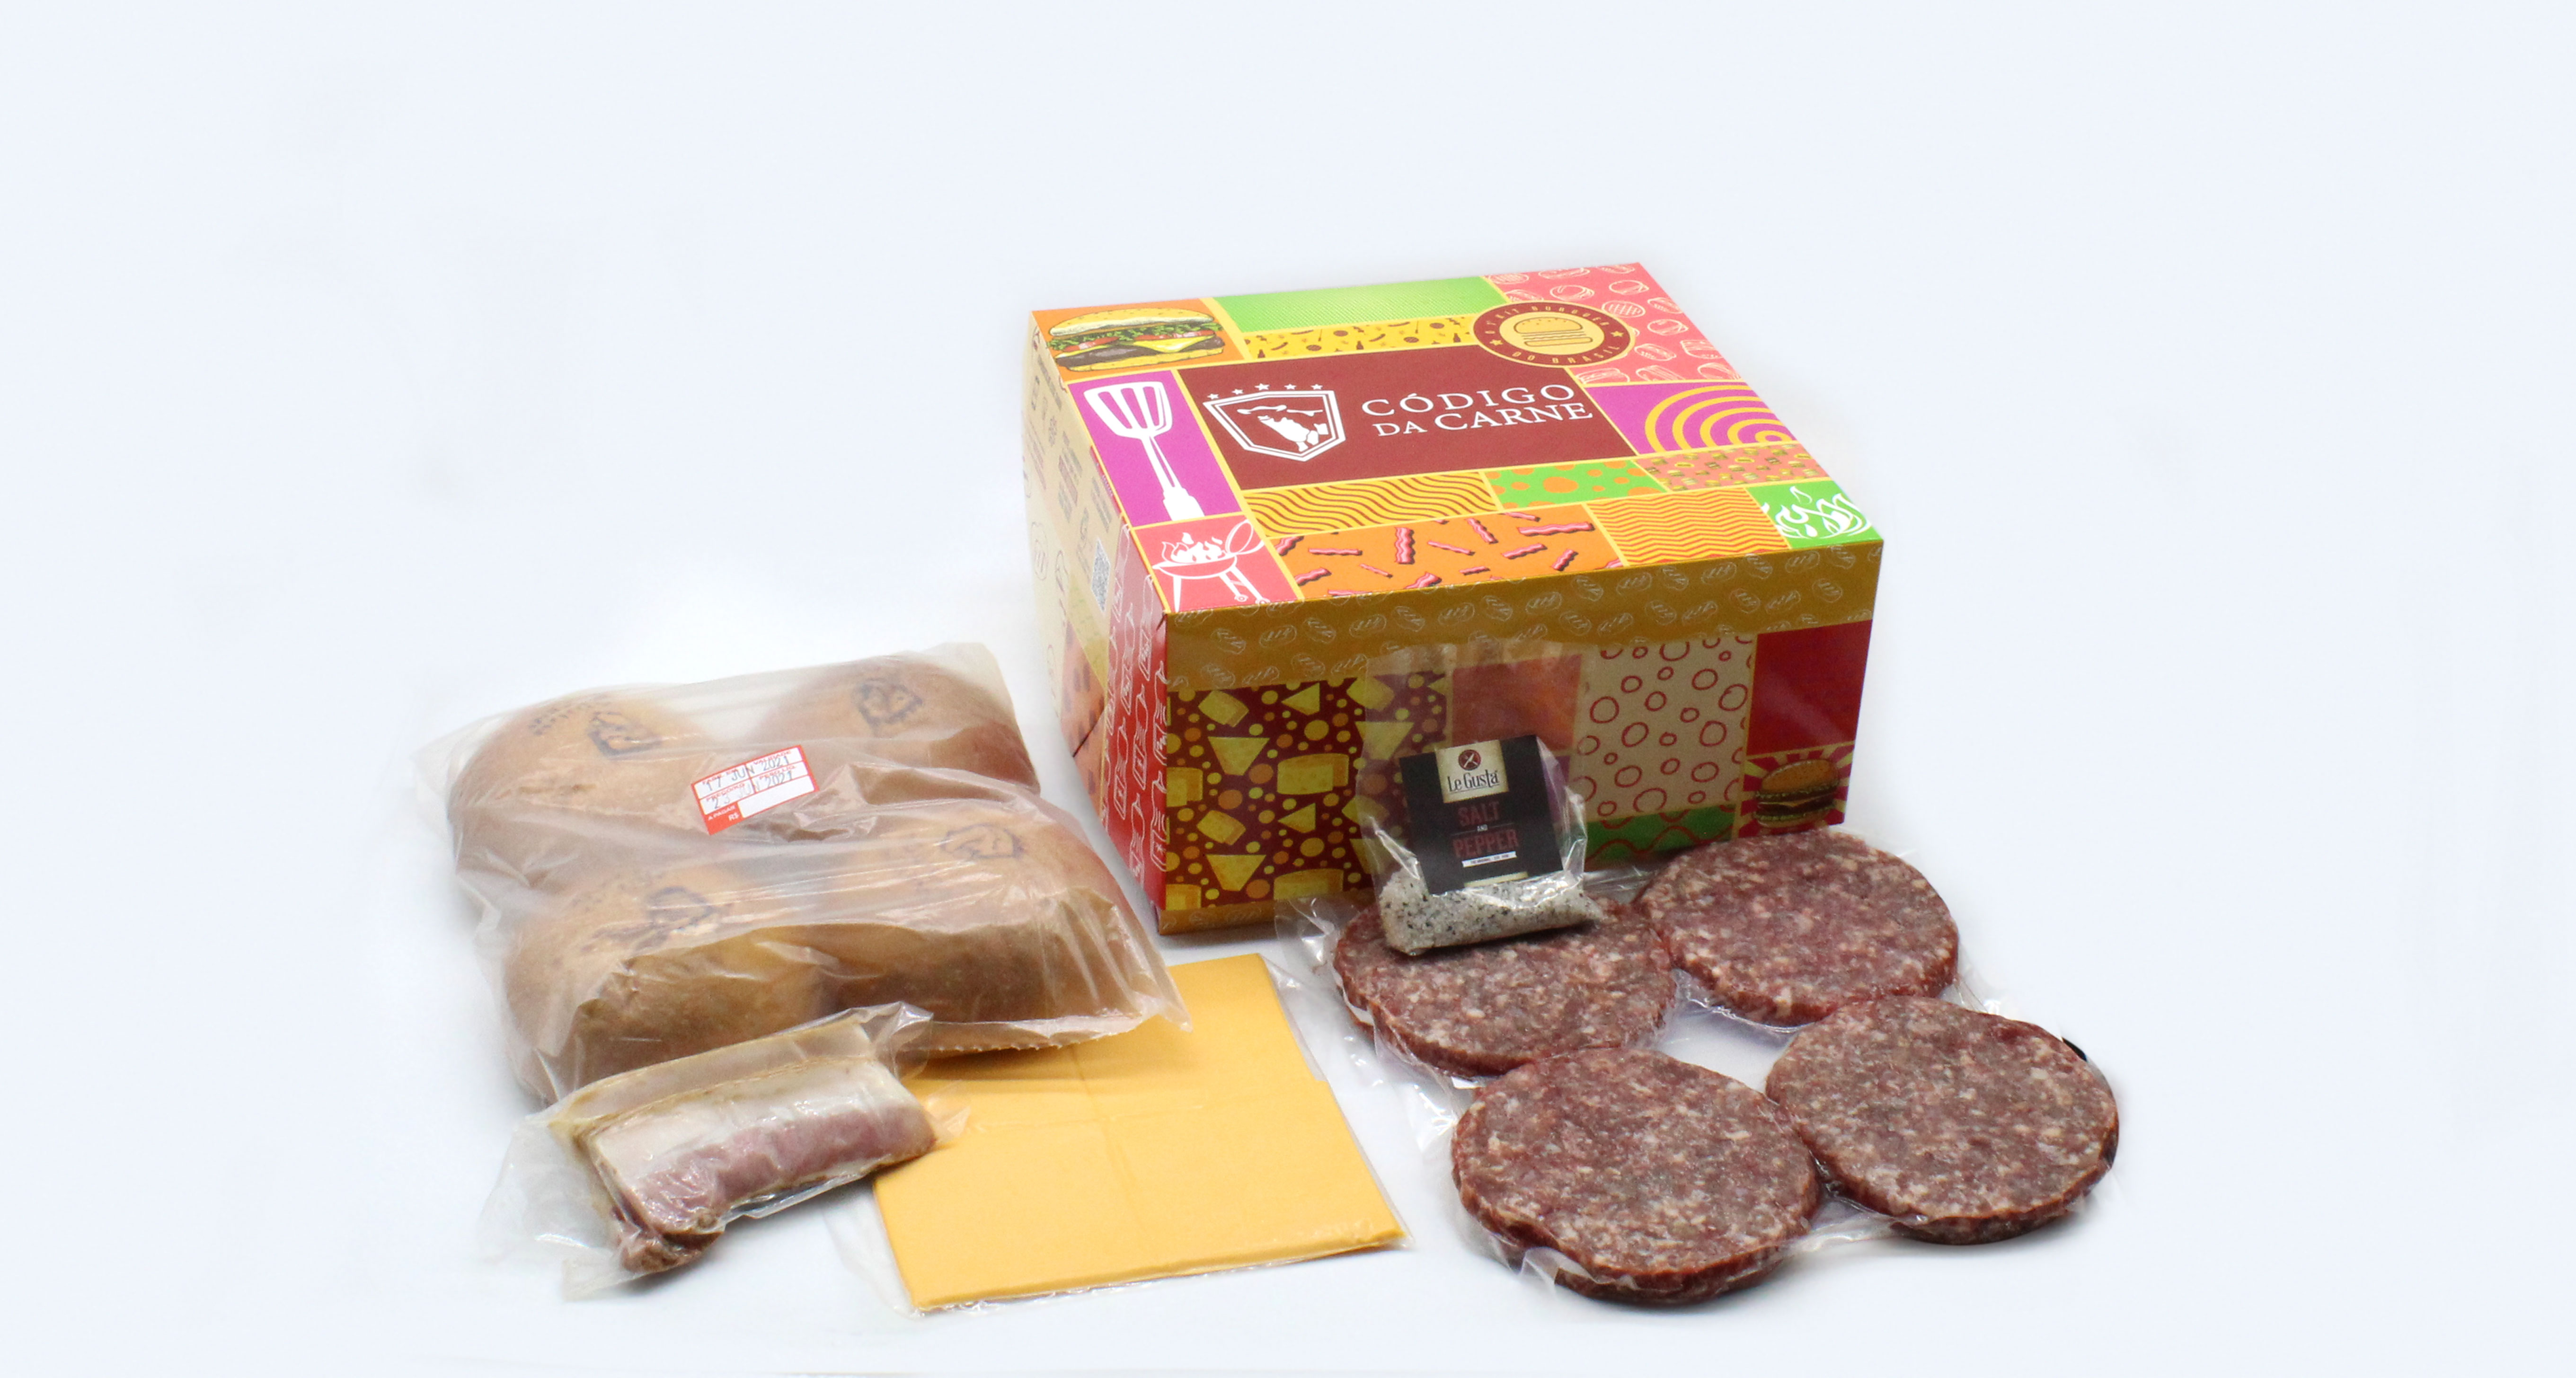 Paper packaging brings fun and information for food preparation